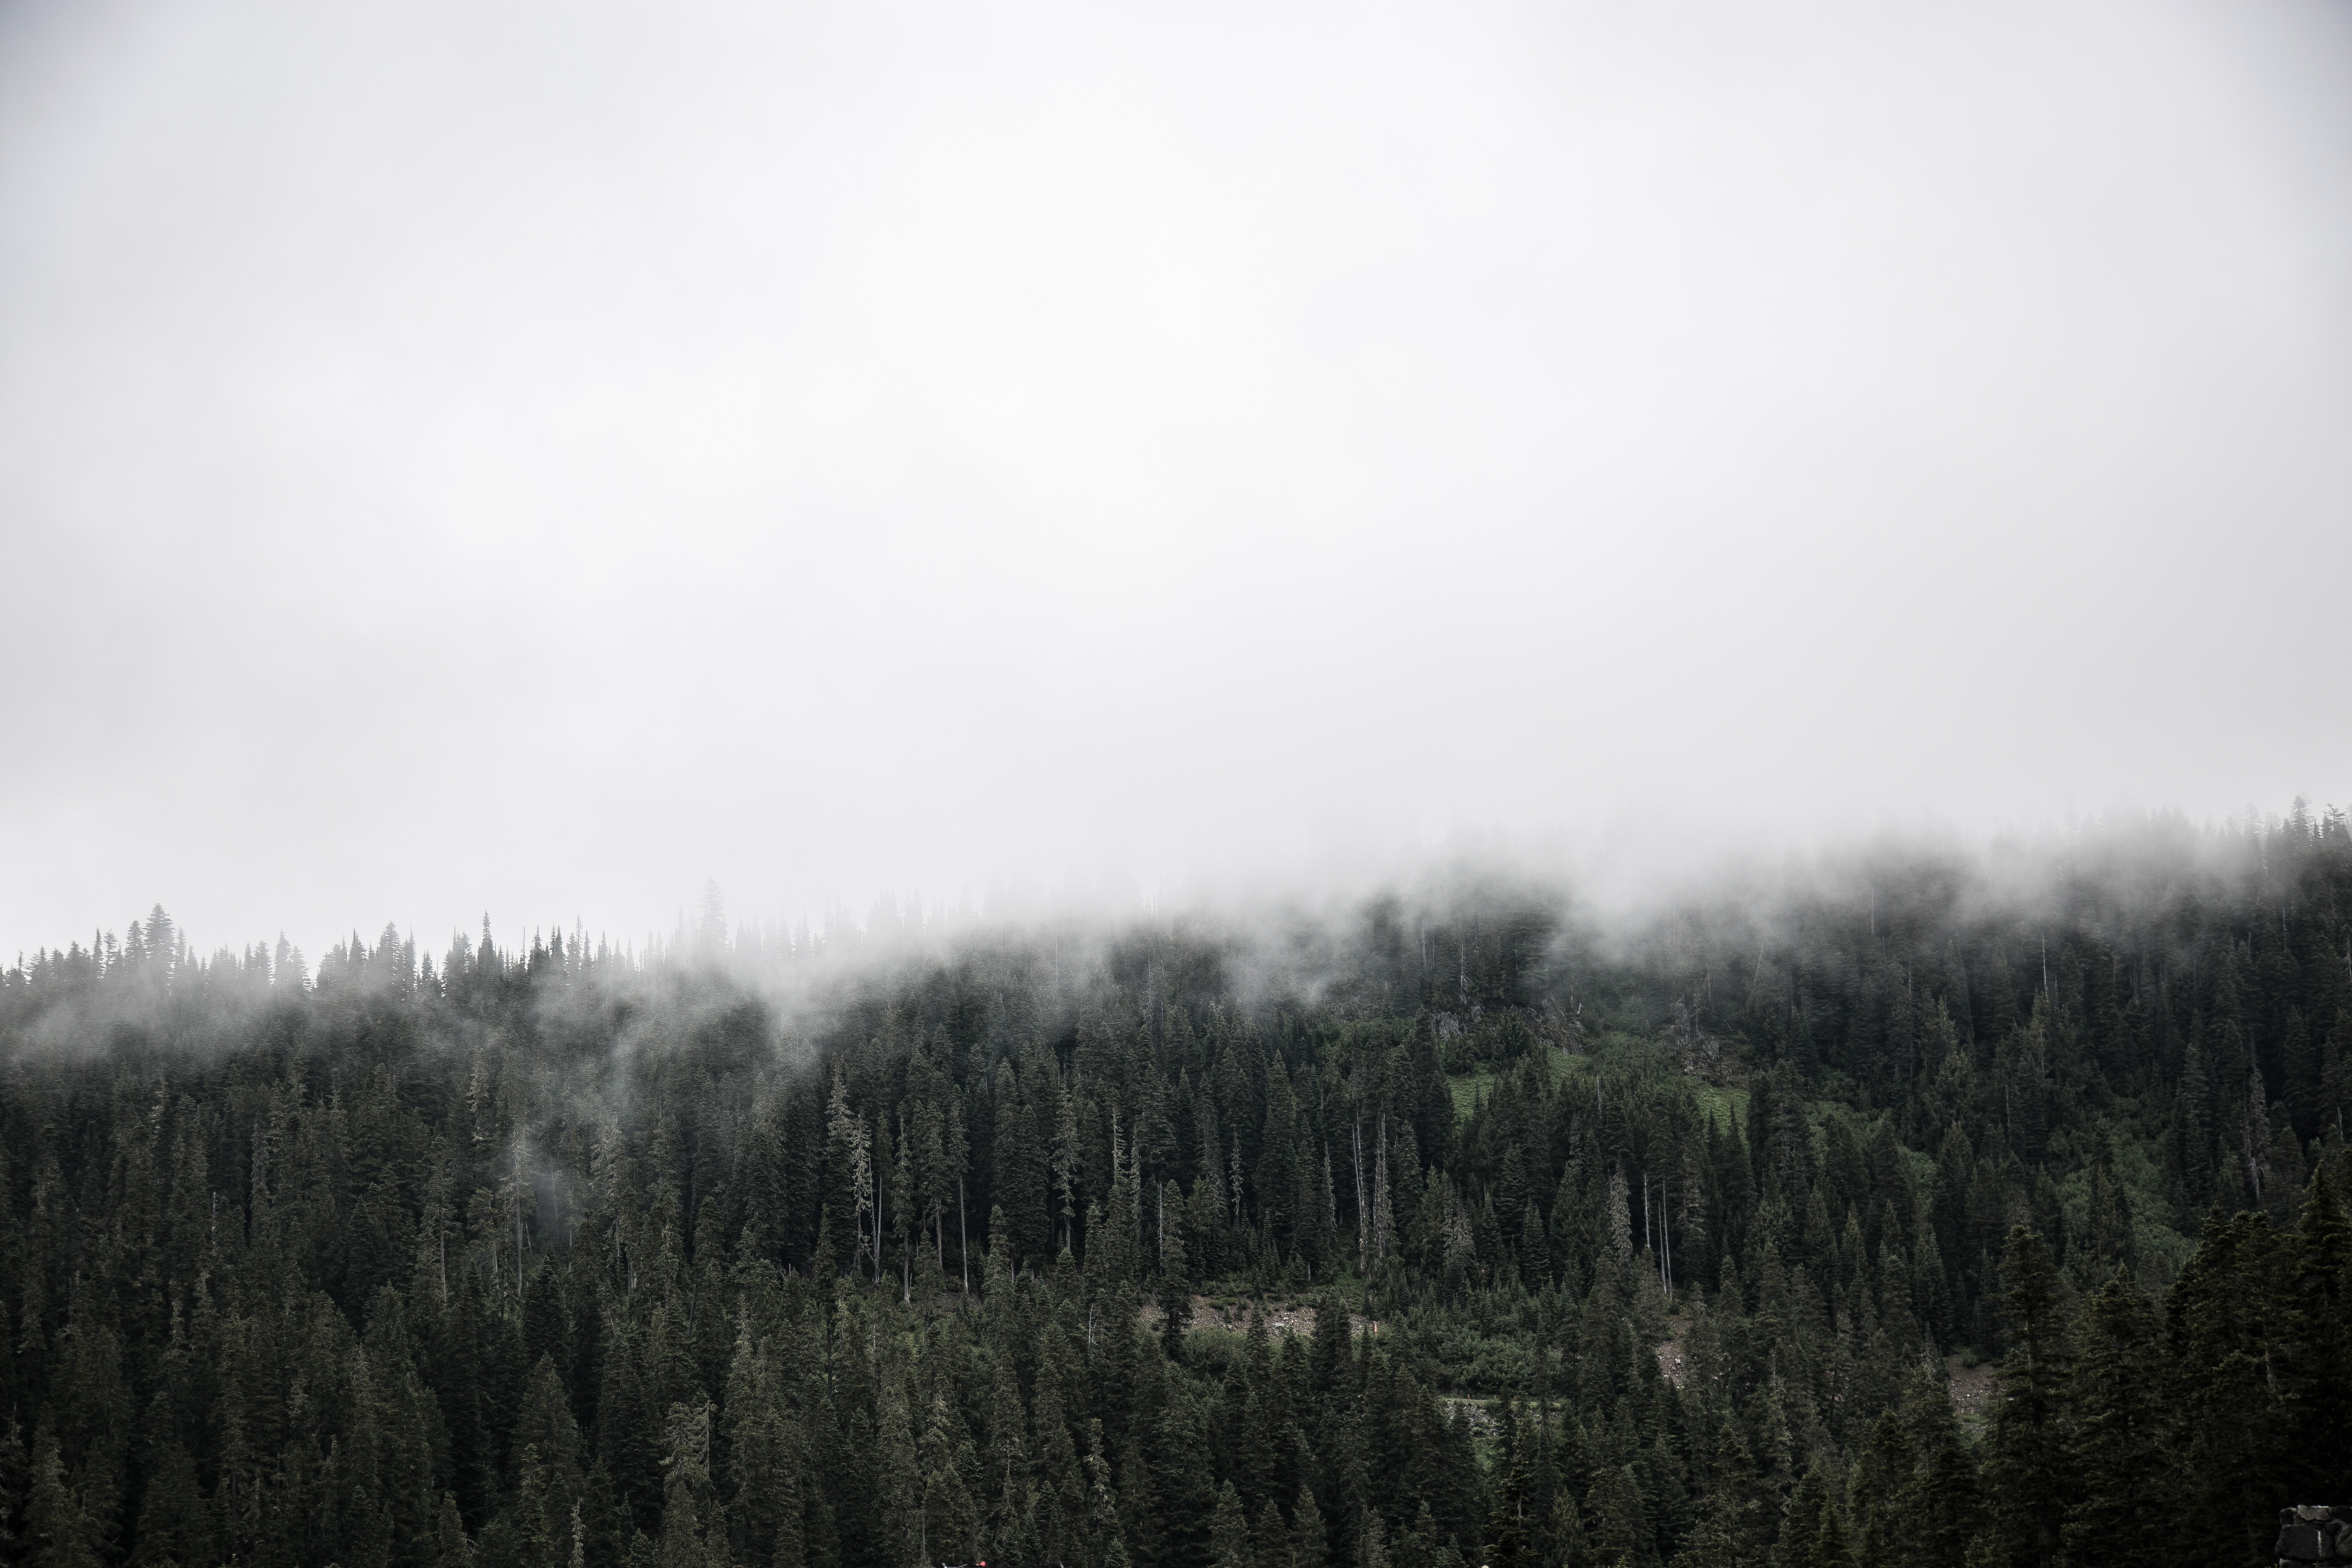 An evergreen forest in Canada enveloped in thick fog